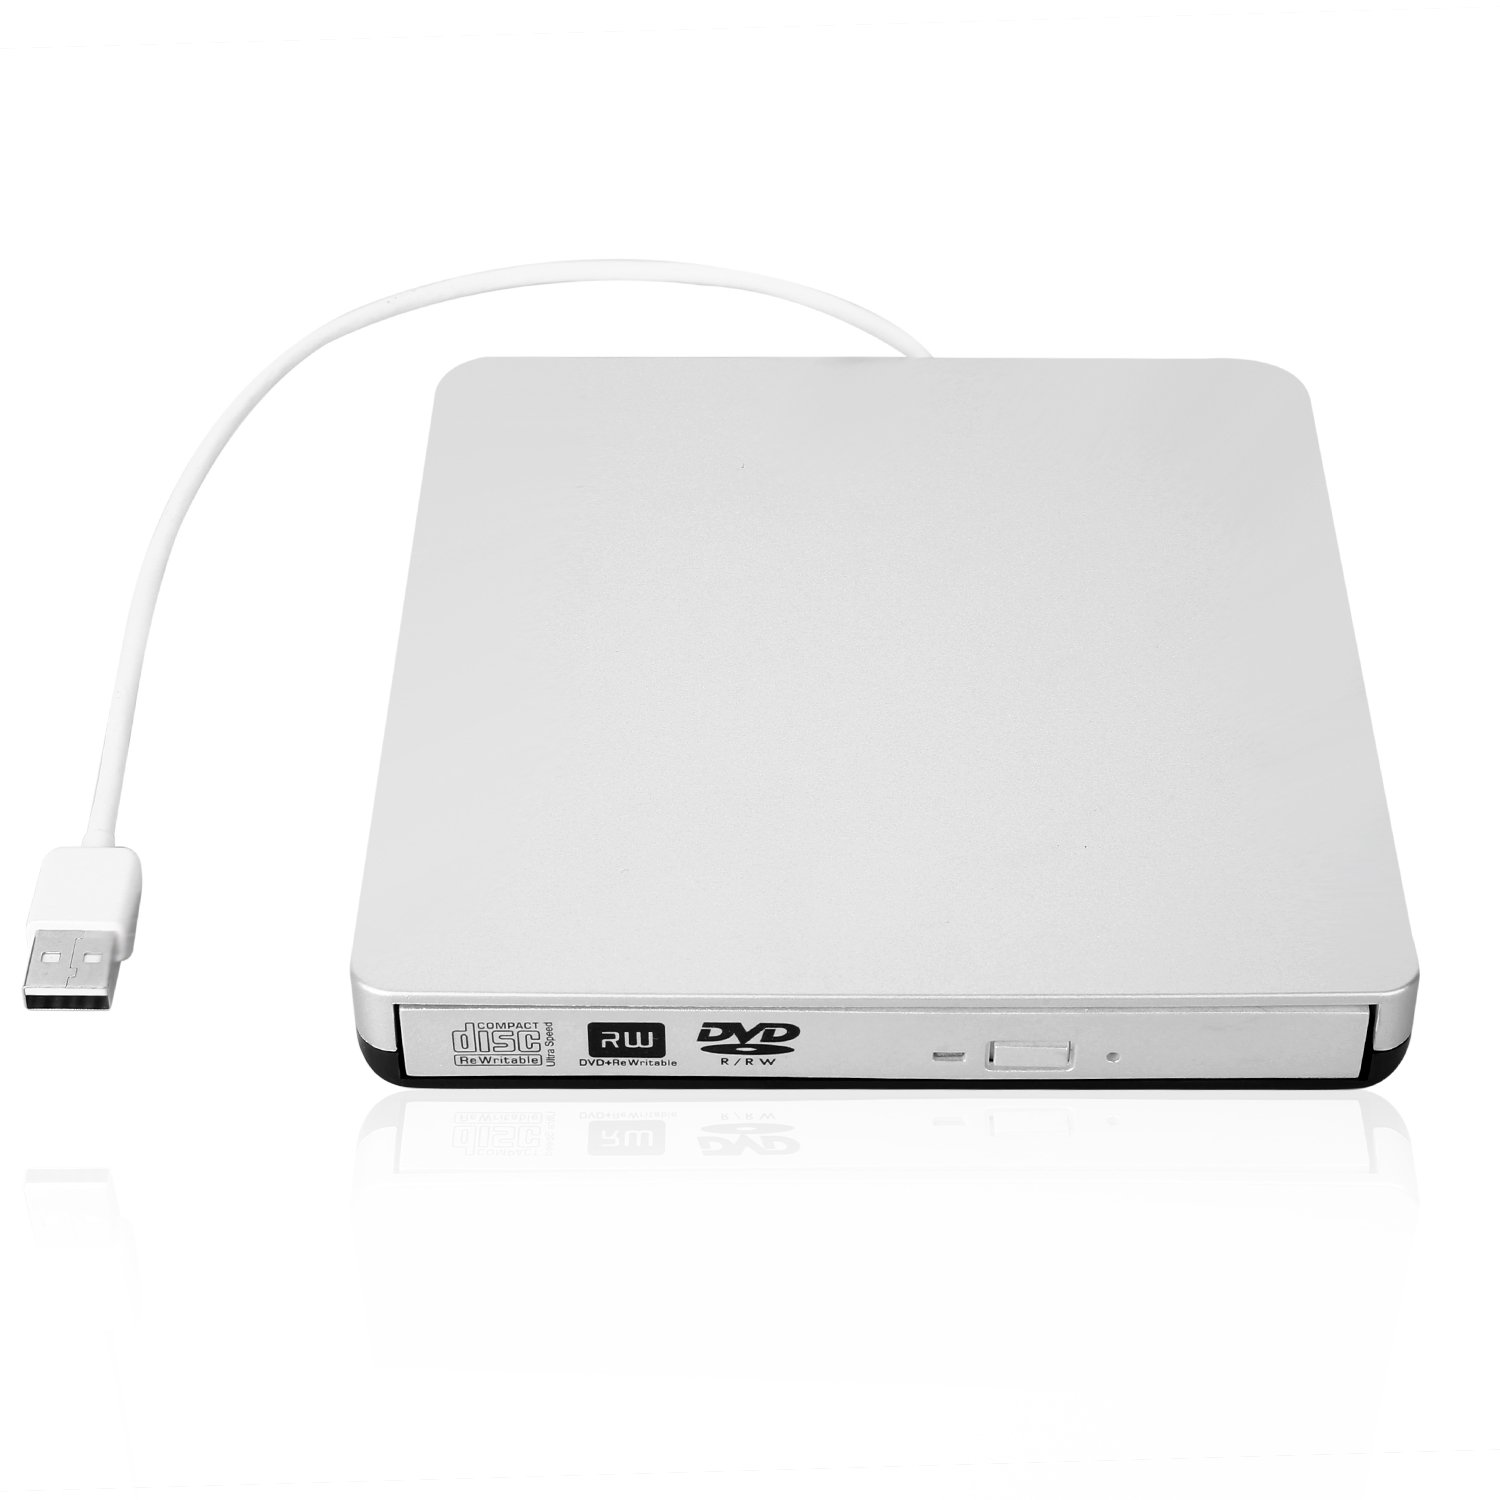 External USB 2.0 DVD Drive, DVD-RW CD-RW Writer Burner Player with Classic Silvery for MacBook Air, MacBook Pro, Mac OS, PC Laptop